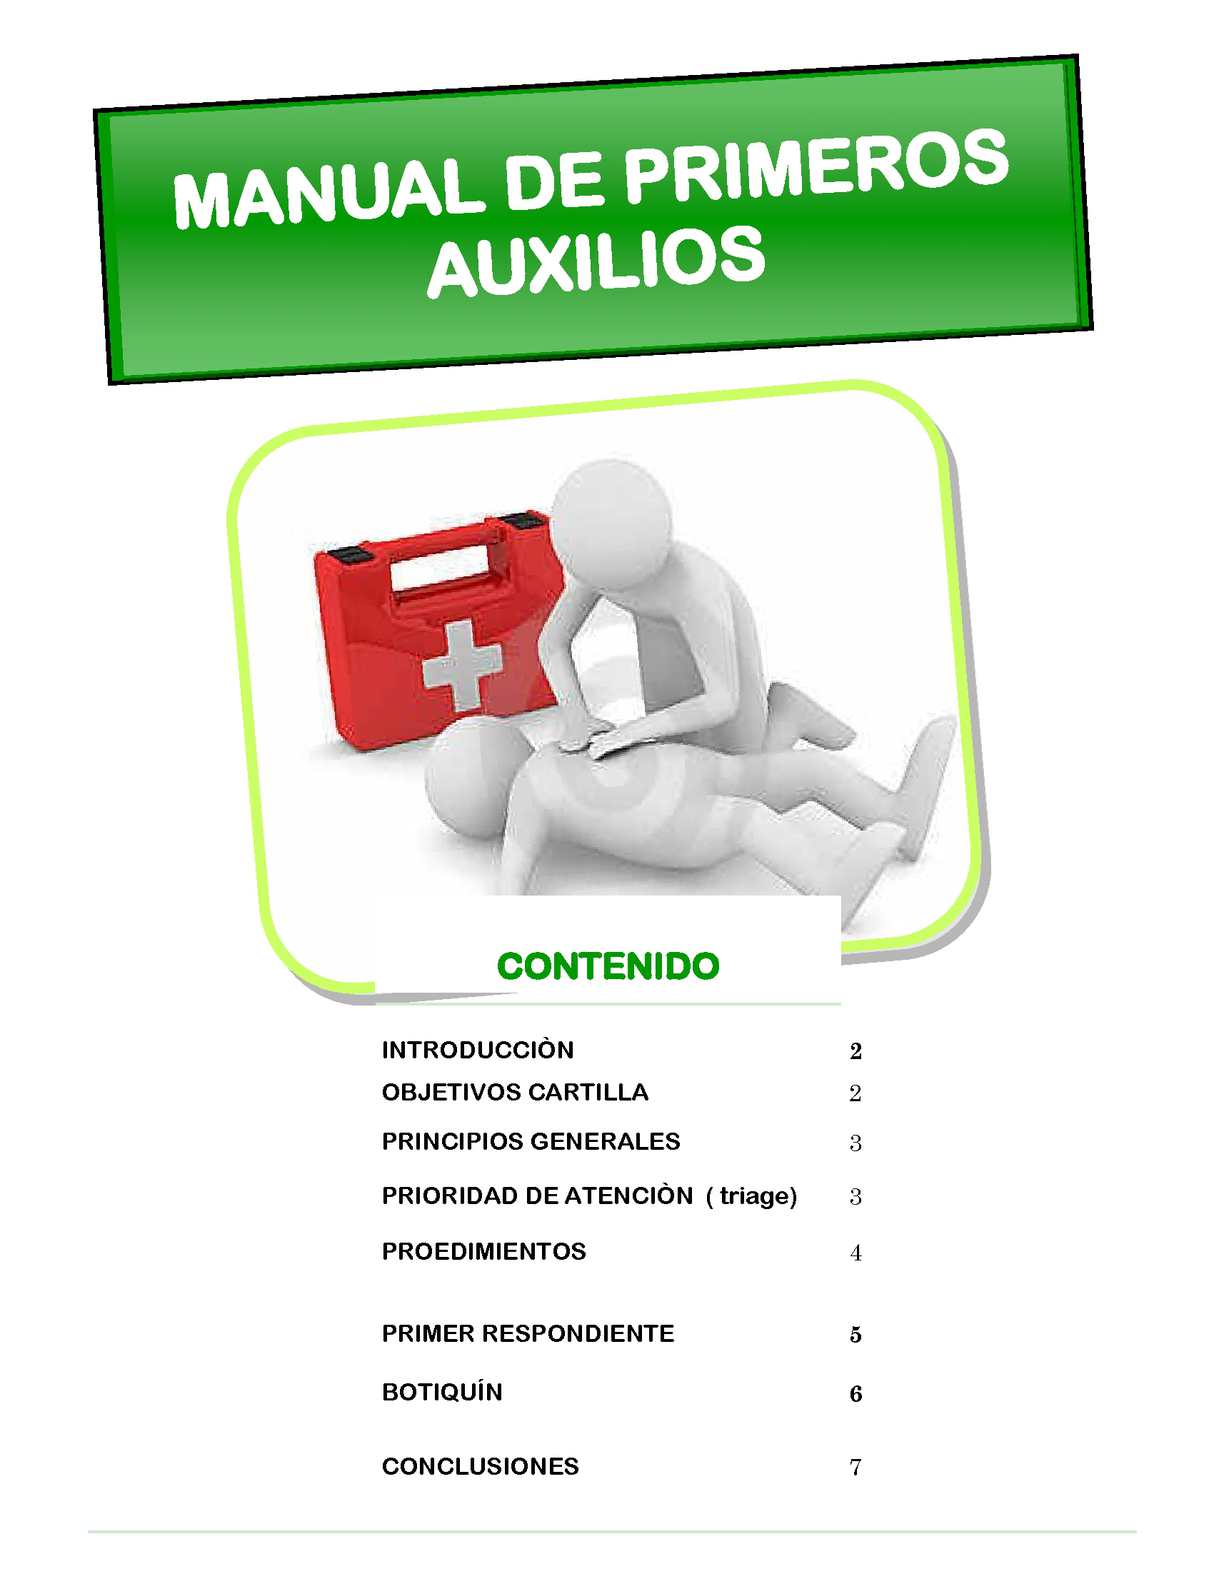 Manual de primeros auxilios pdf pages for Manual de acuicultura pdf